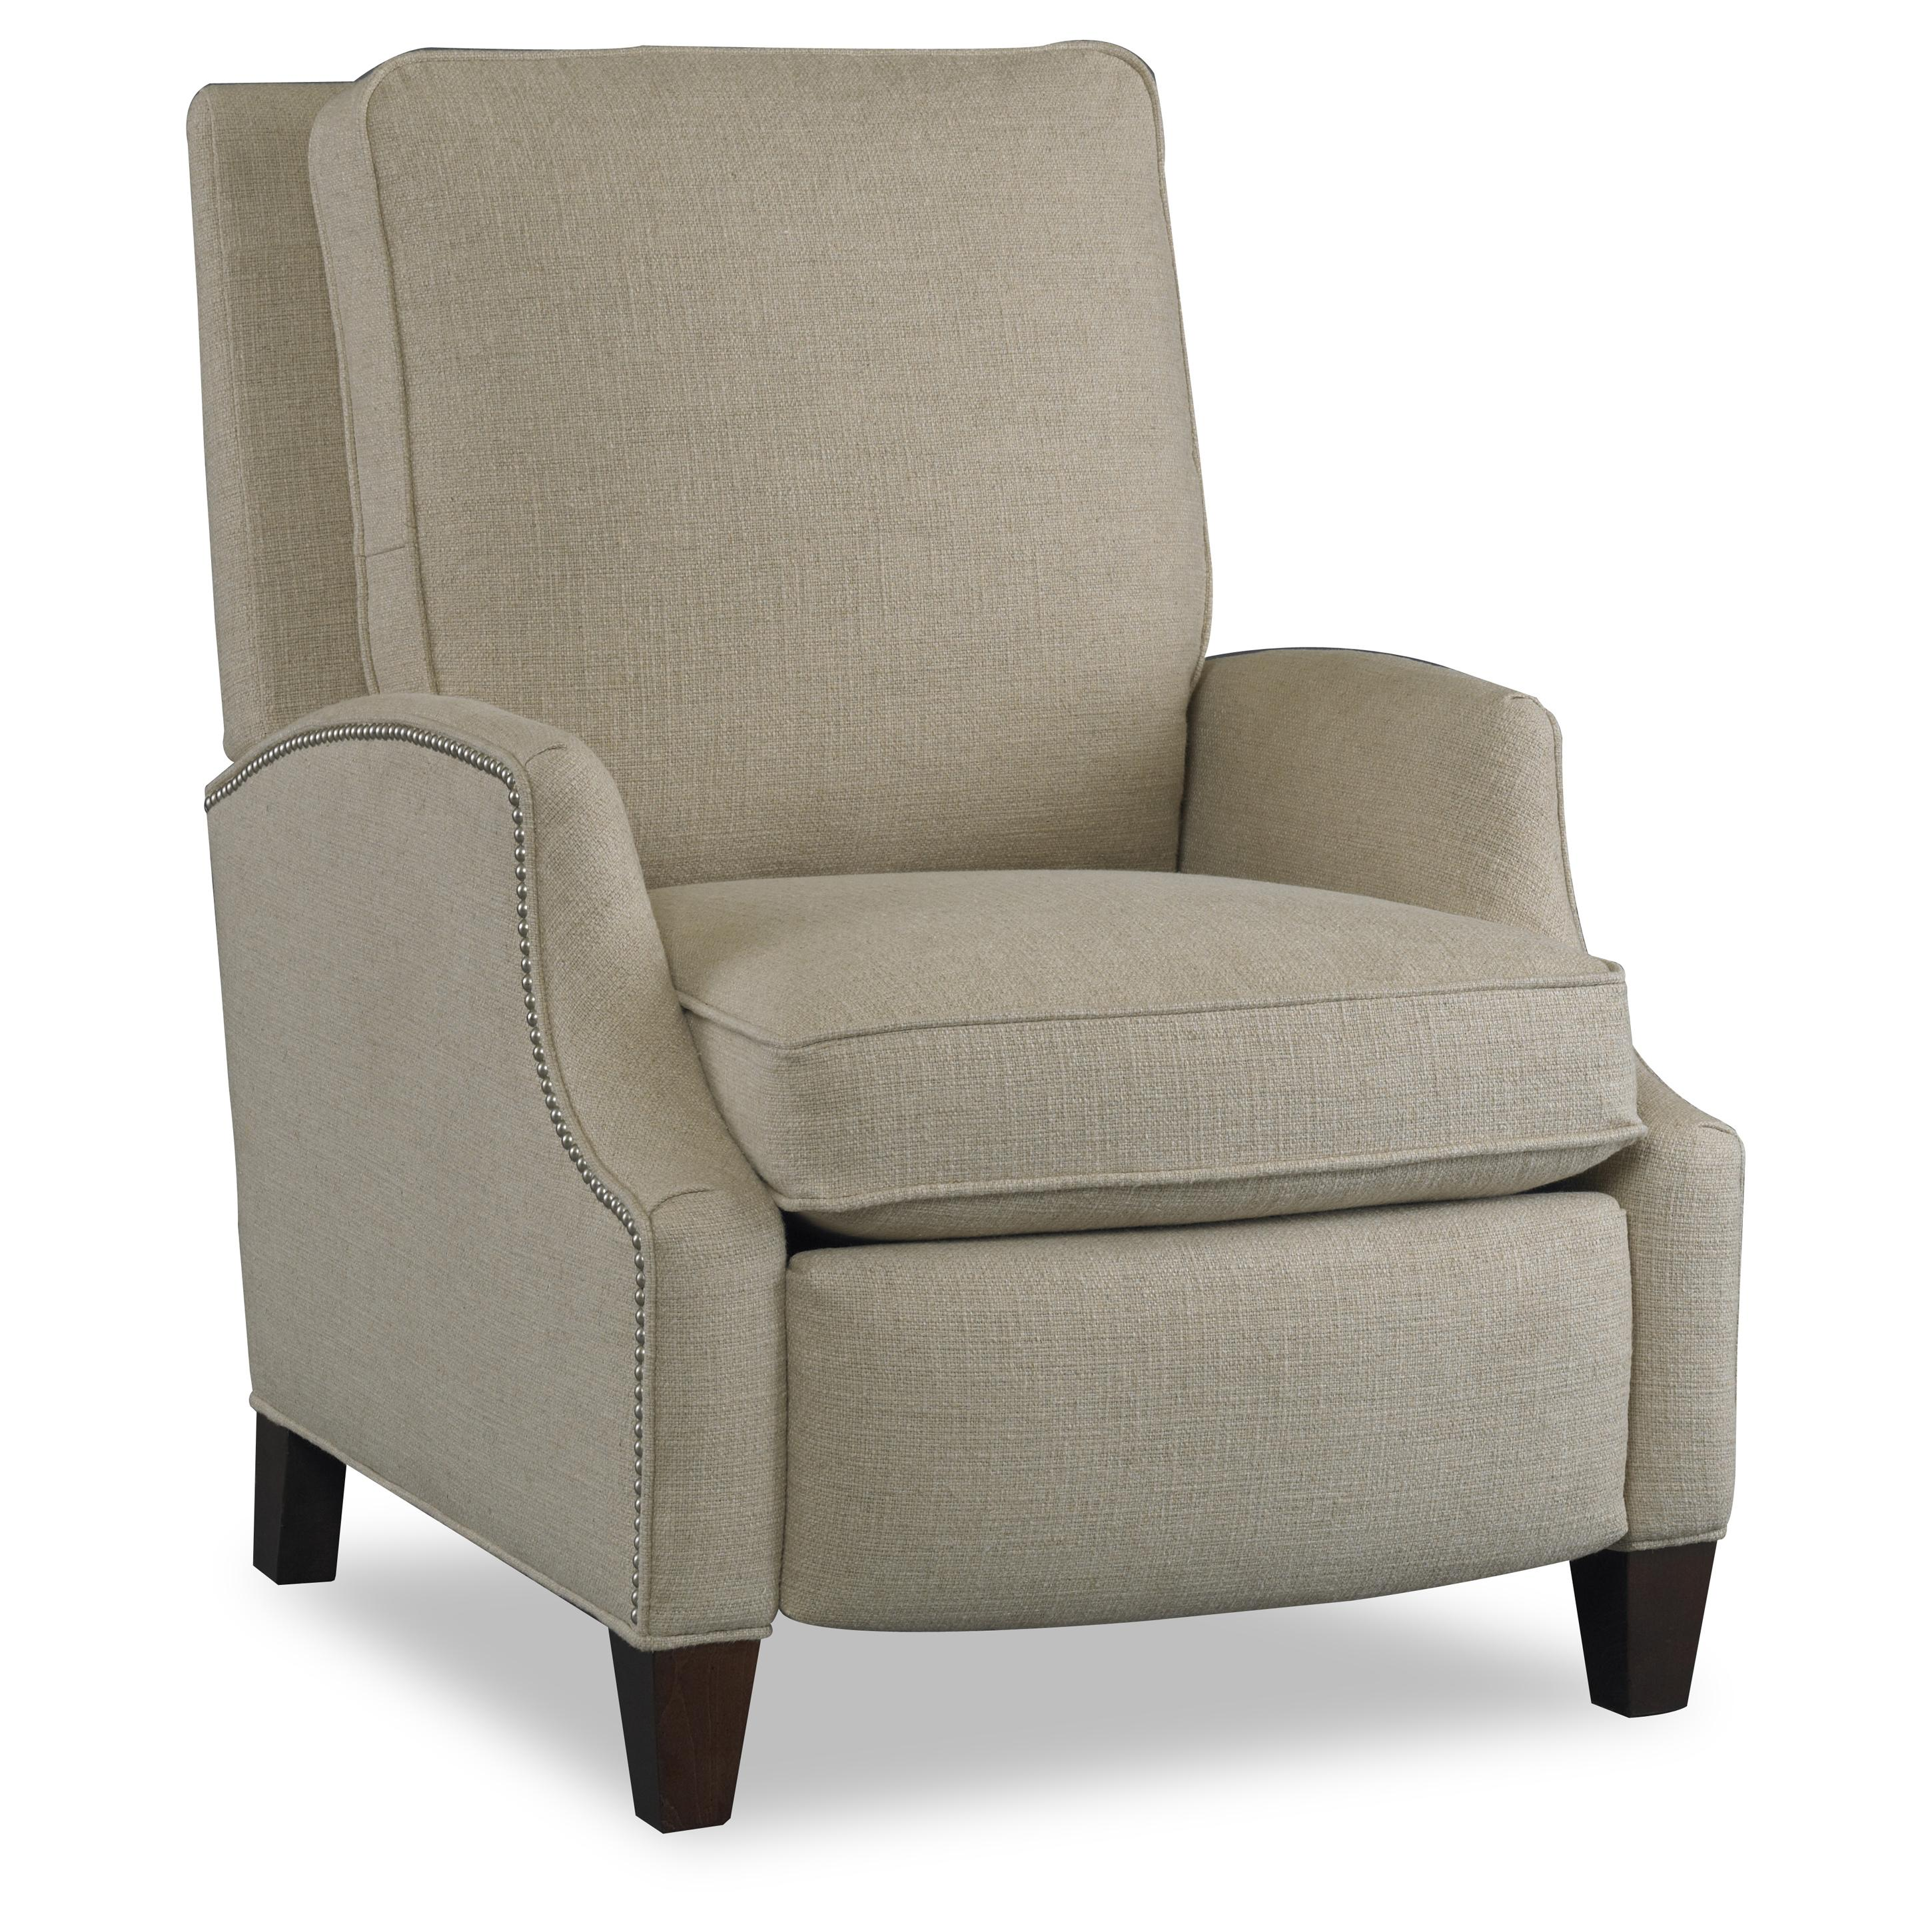 sam s club upholstered chairs lounge chair covers australia moore demetrius transitional reclining with